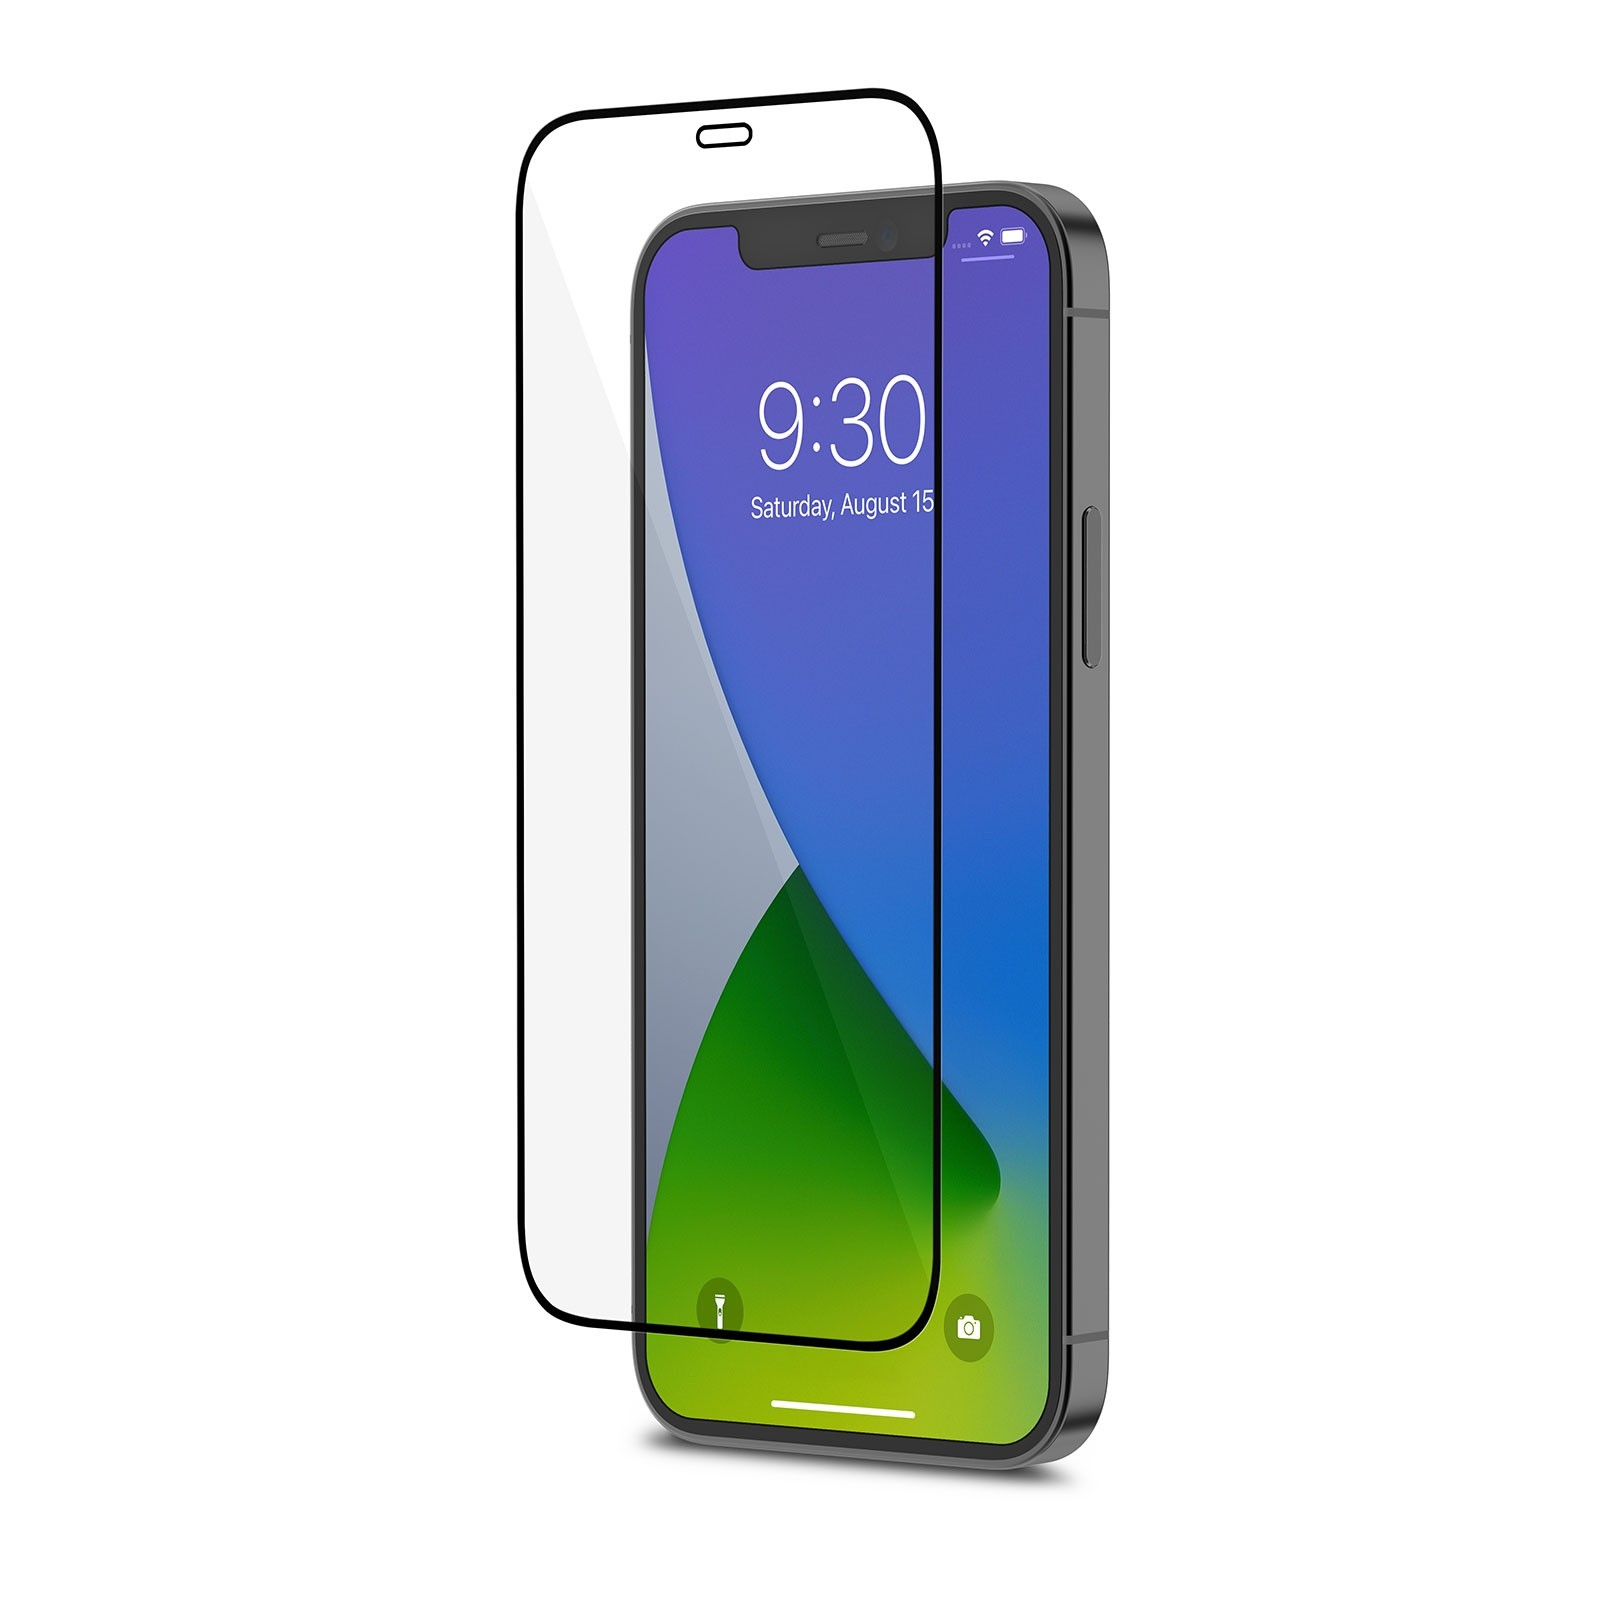 Moshi AirFoil Pro for iPhone 12/12 Pro - Black - Clear/Glossy, 99MO044912